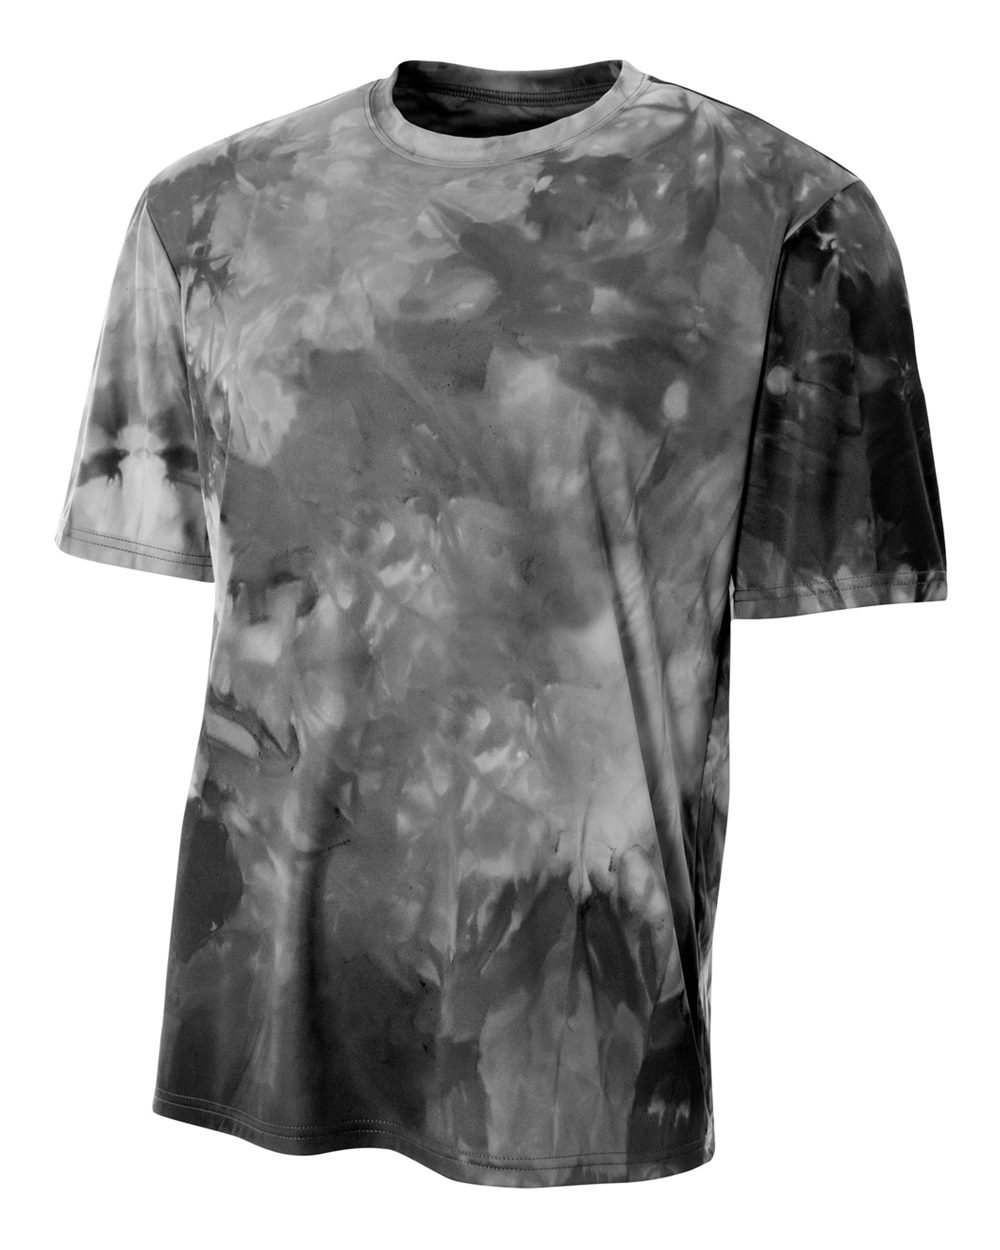 Cloud Dye Moisture Wicking Cool /& Comfortable Tee NEW 8 Colors in 15 Mens, Womens /& Youth Sizes